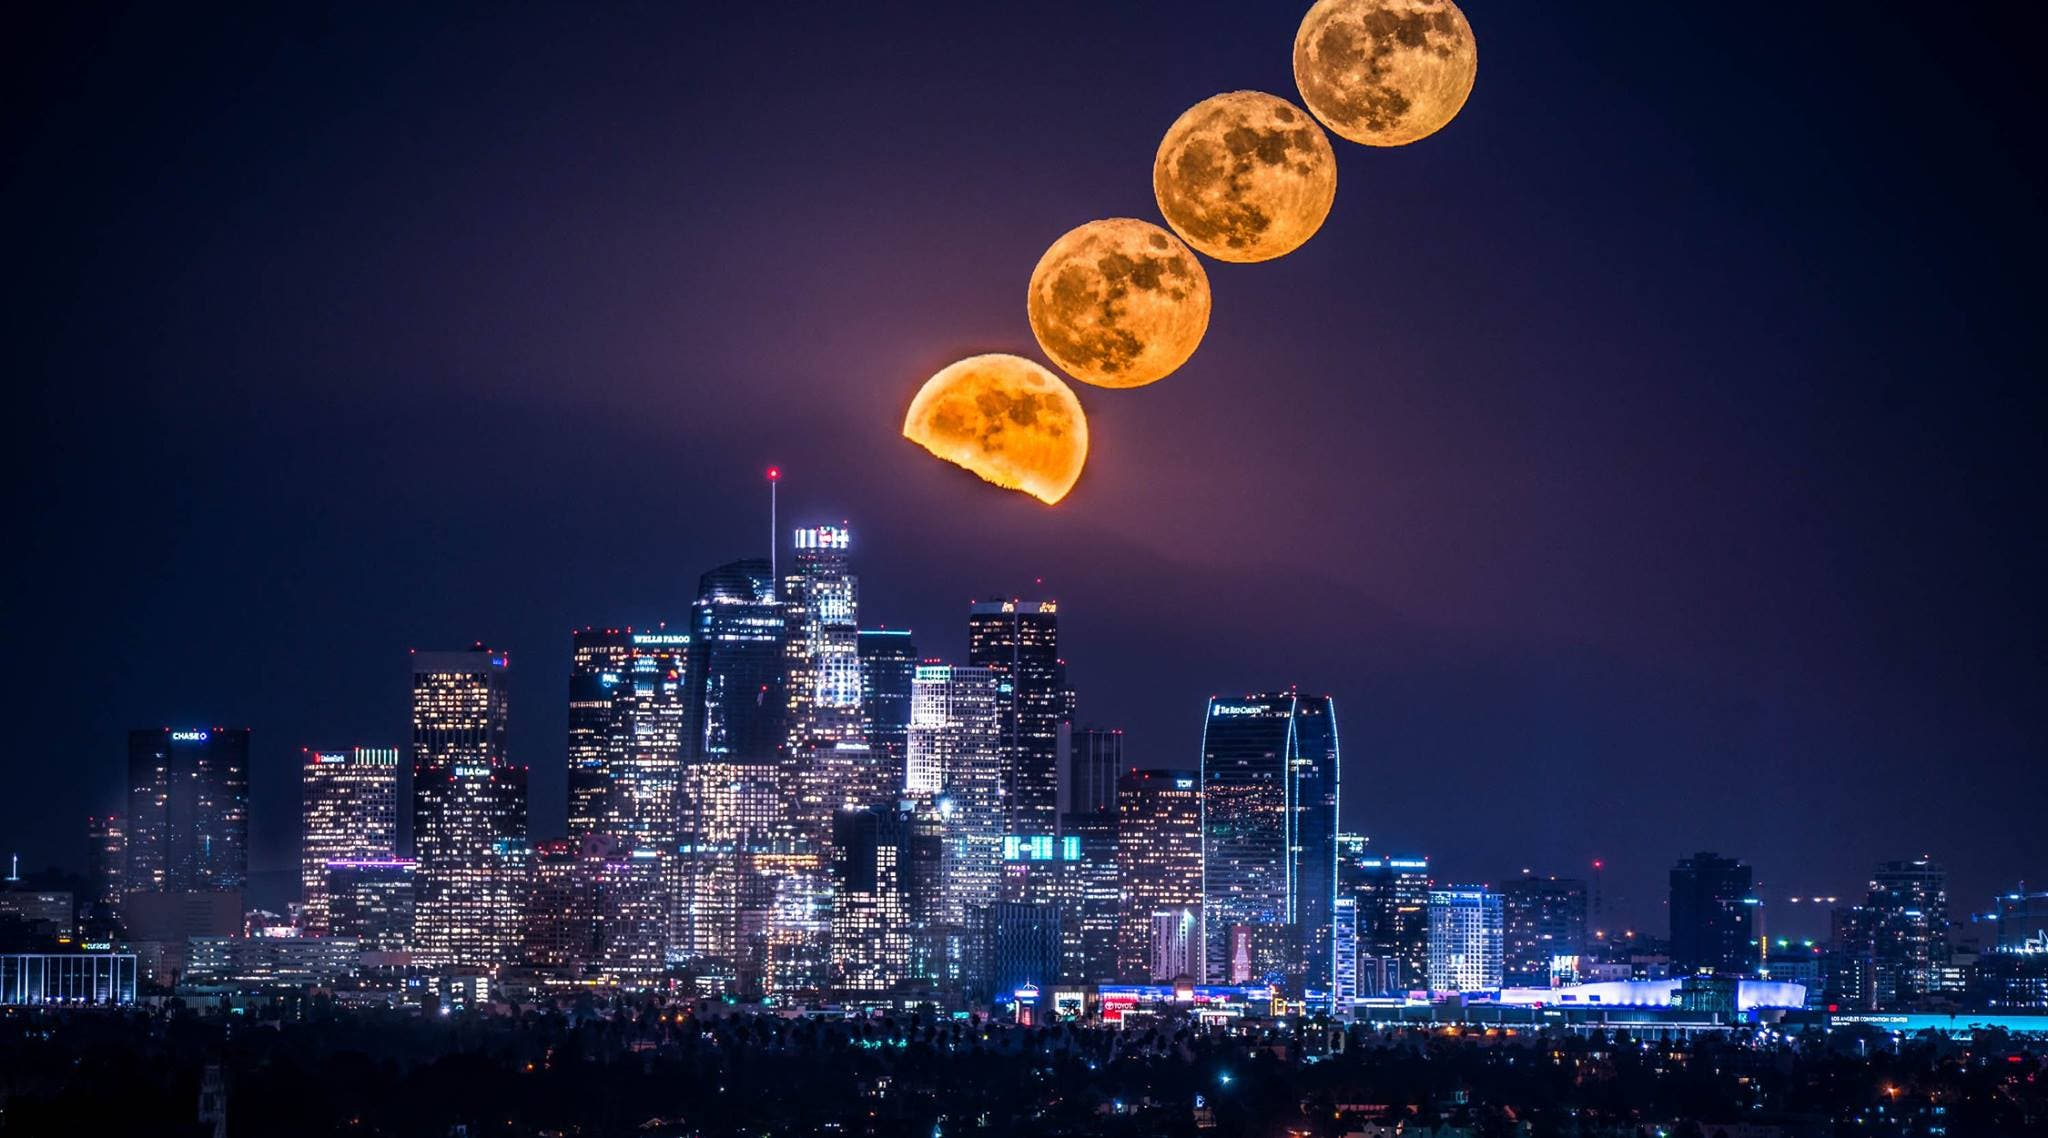 Serge Ramelli Demonstrates How His Amazing Photograph Of Supermoon Was Created